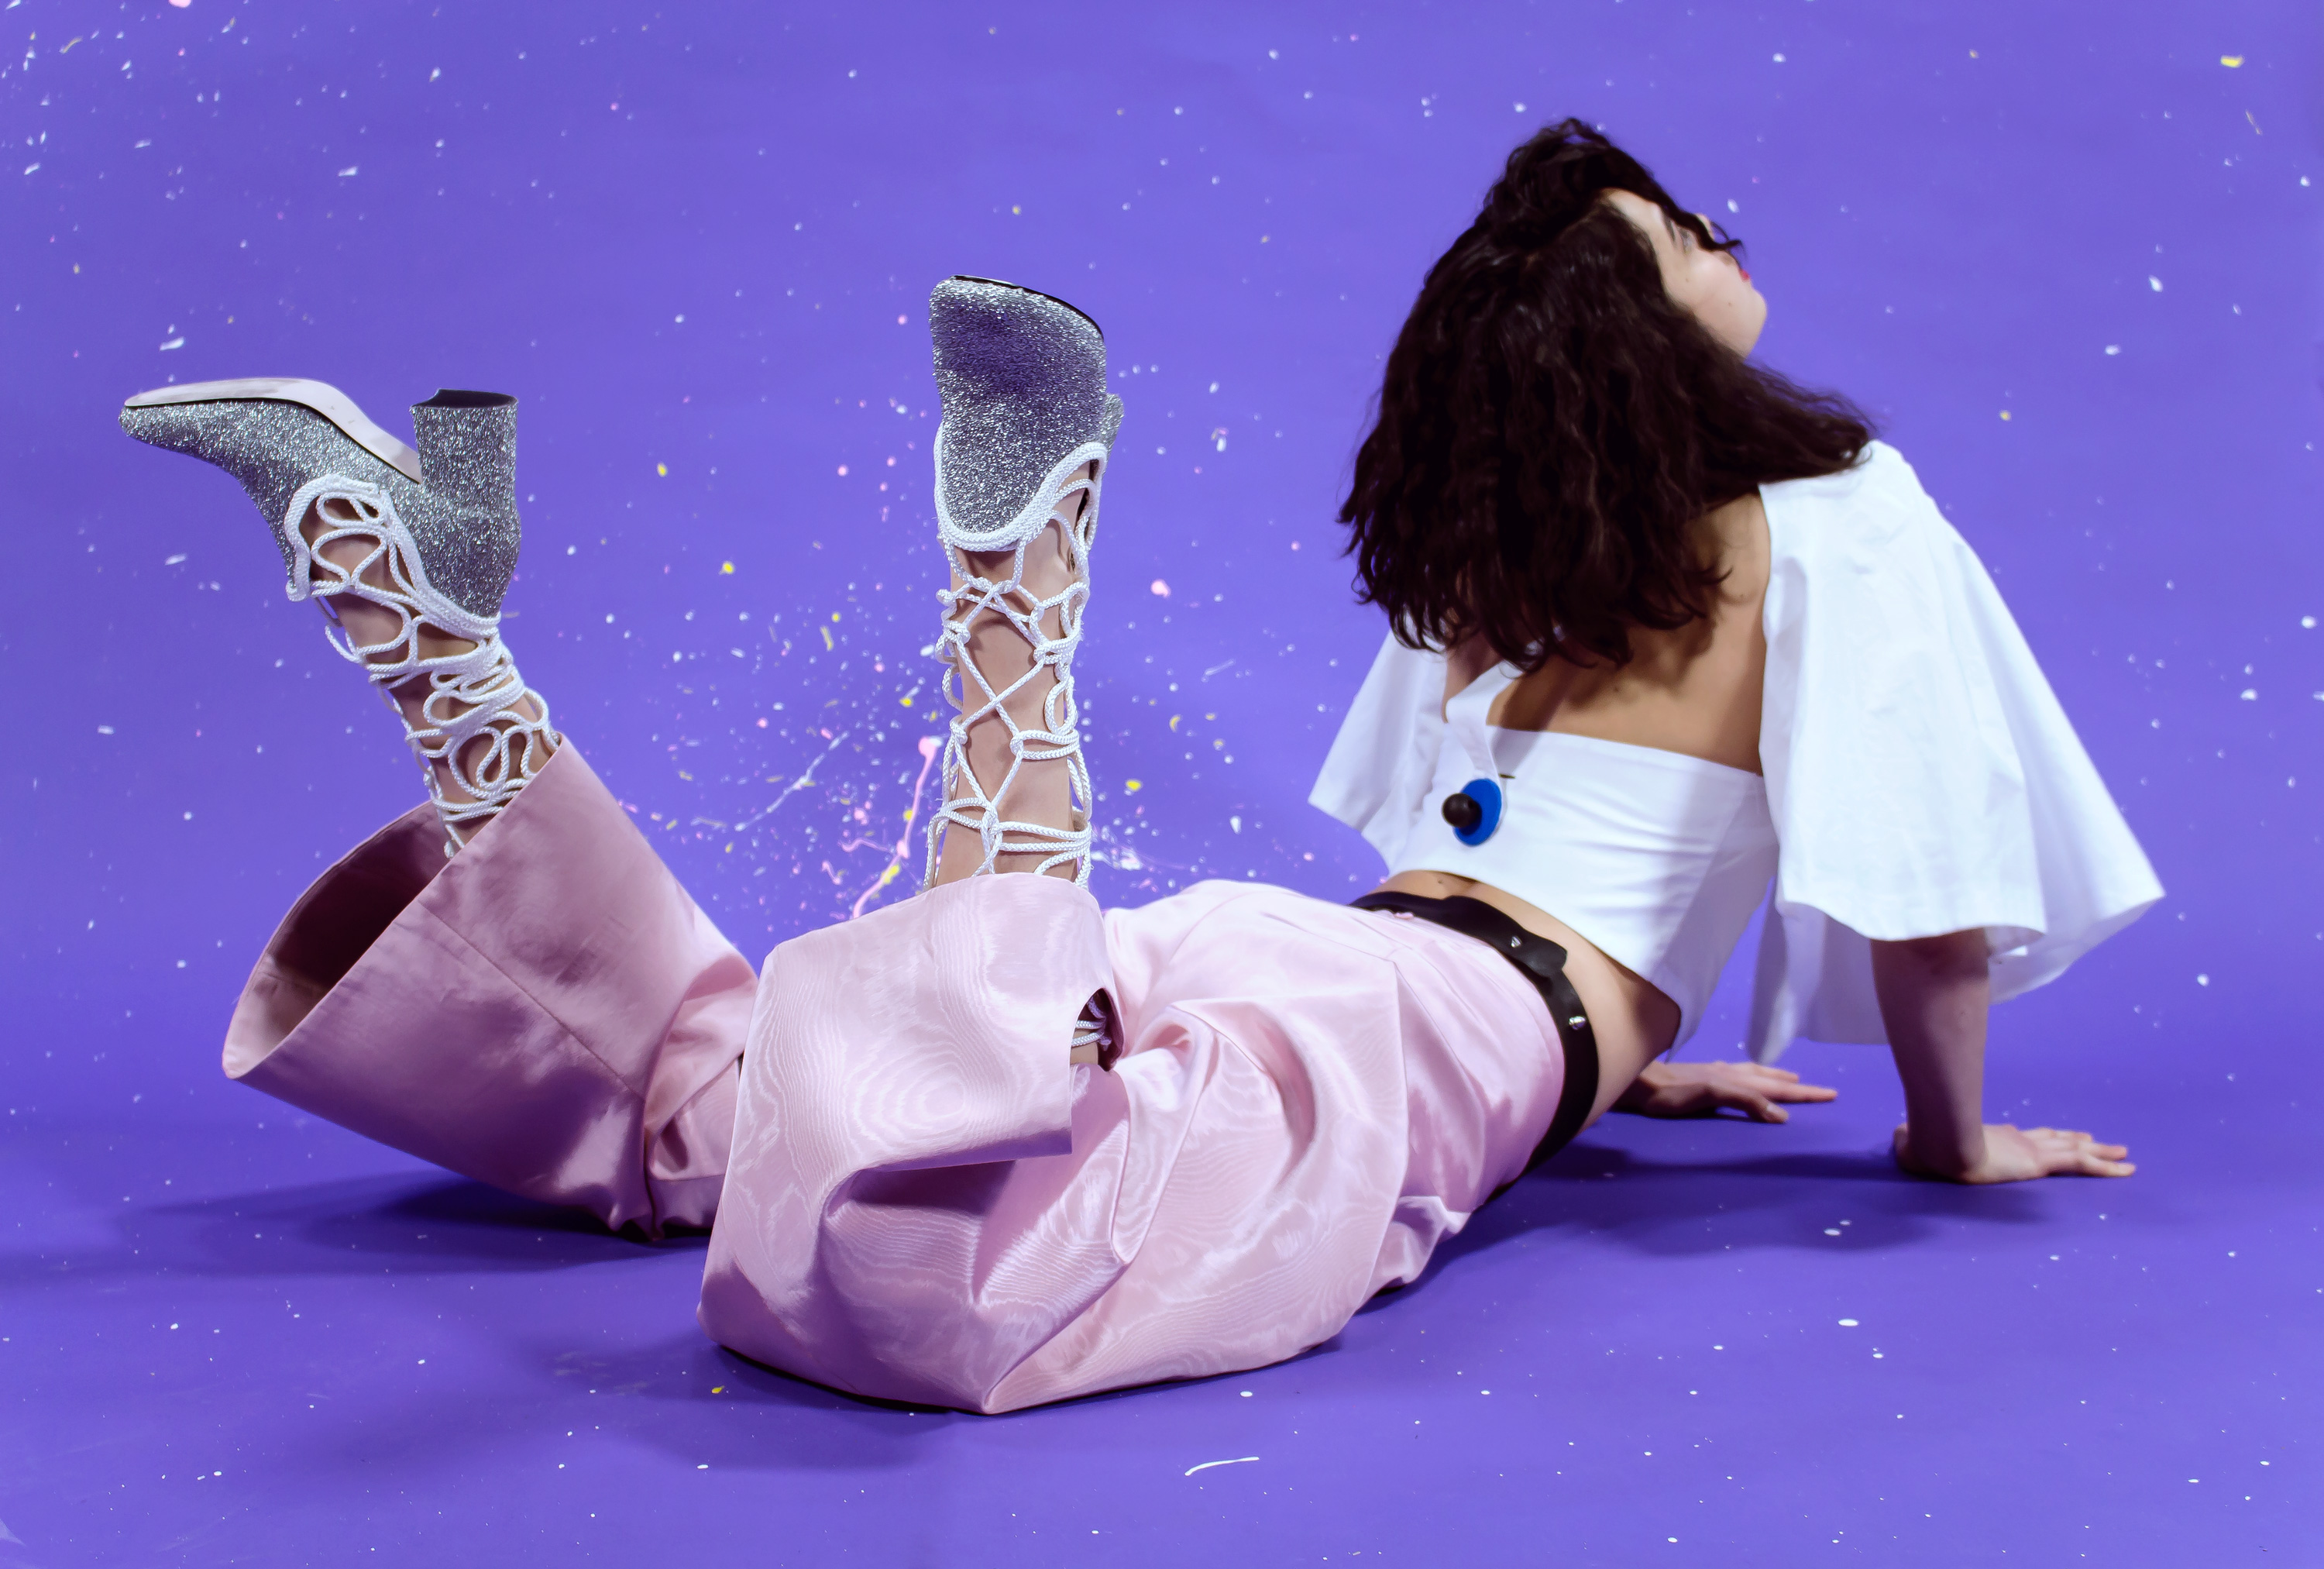 Model on ground in upward facing dog pose with feet and face raised to the ceiling, wearing Dali at the Disco white cotton blouse with big sleeves, pink moirée cut-out pants, ocelot belt and glitter boots